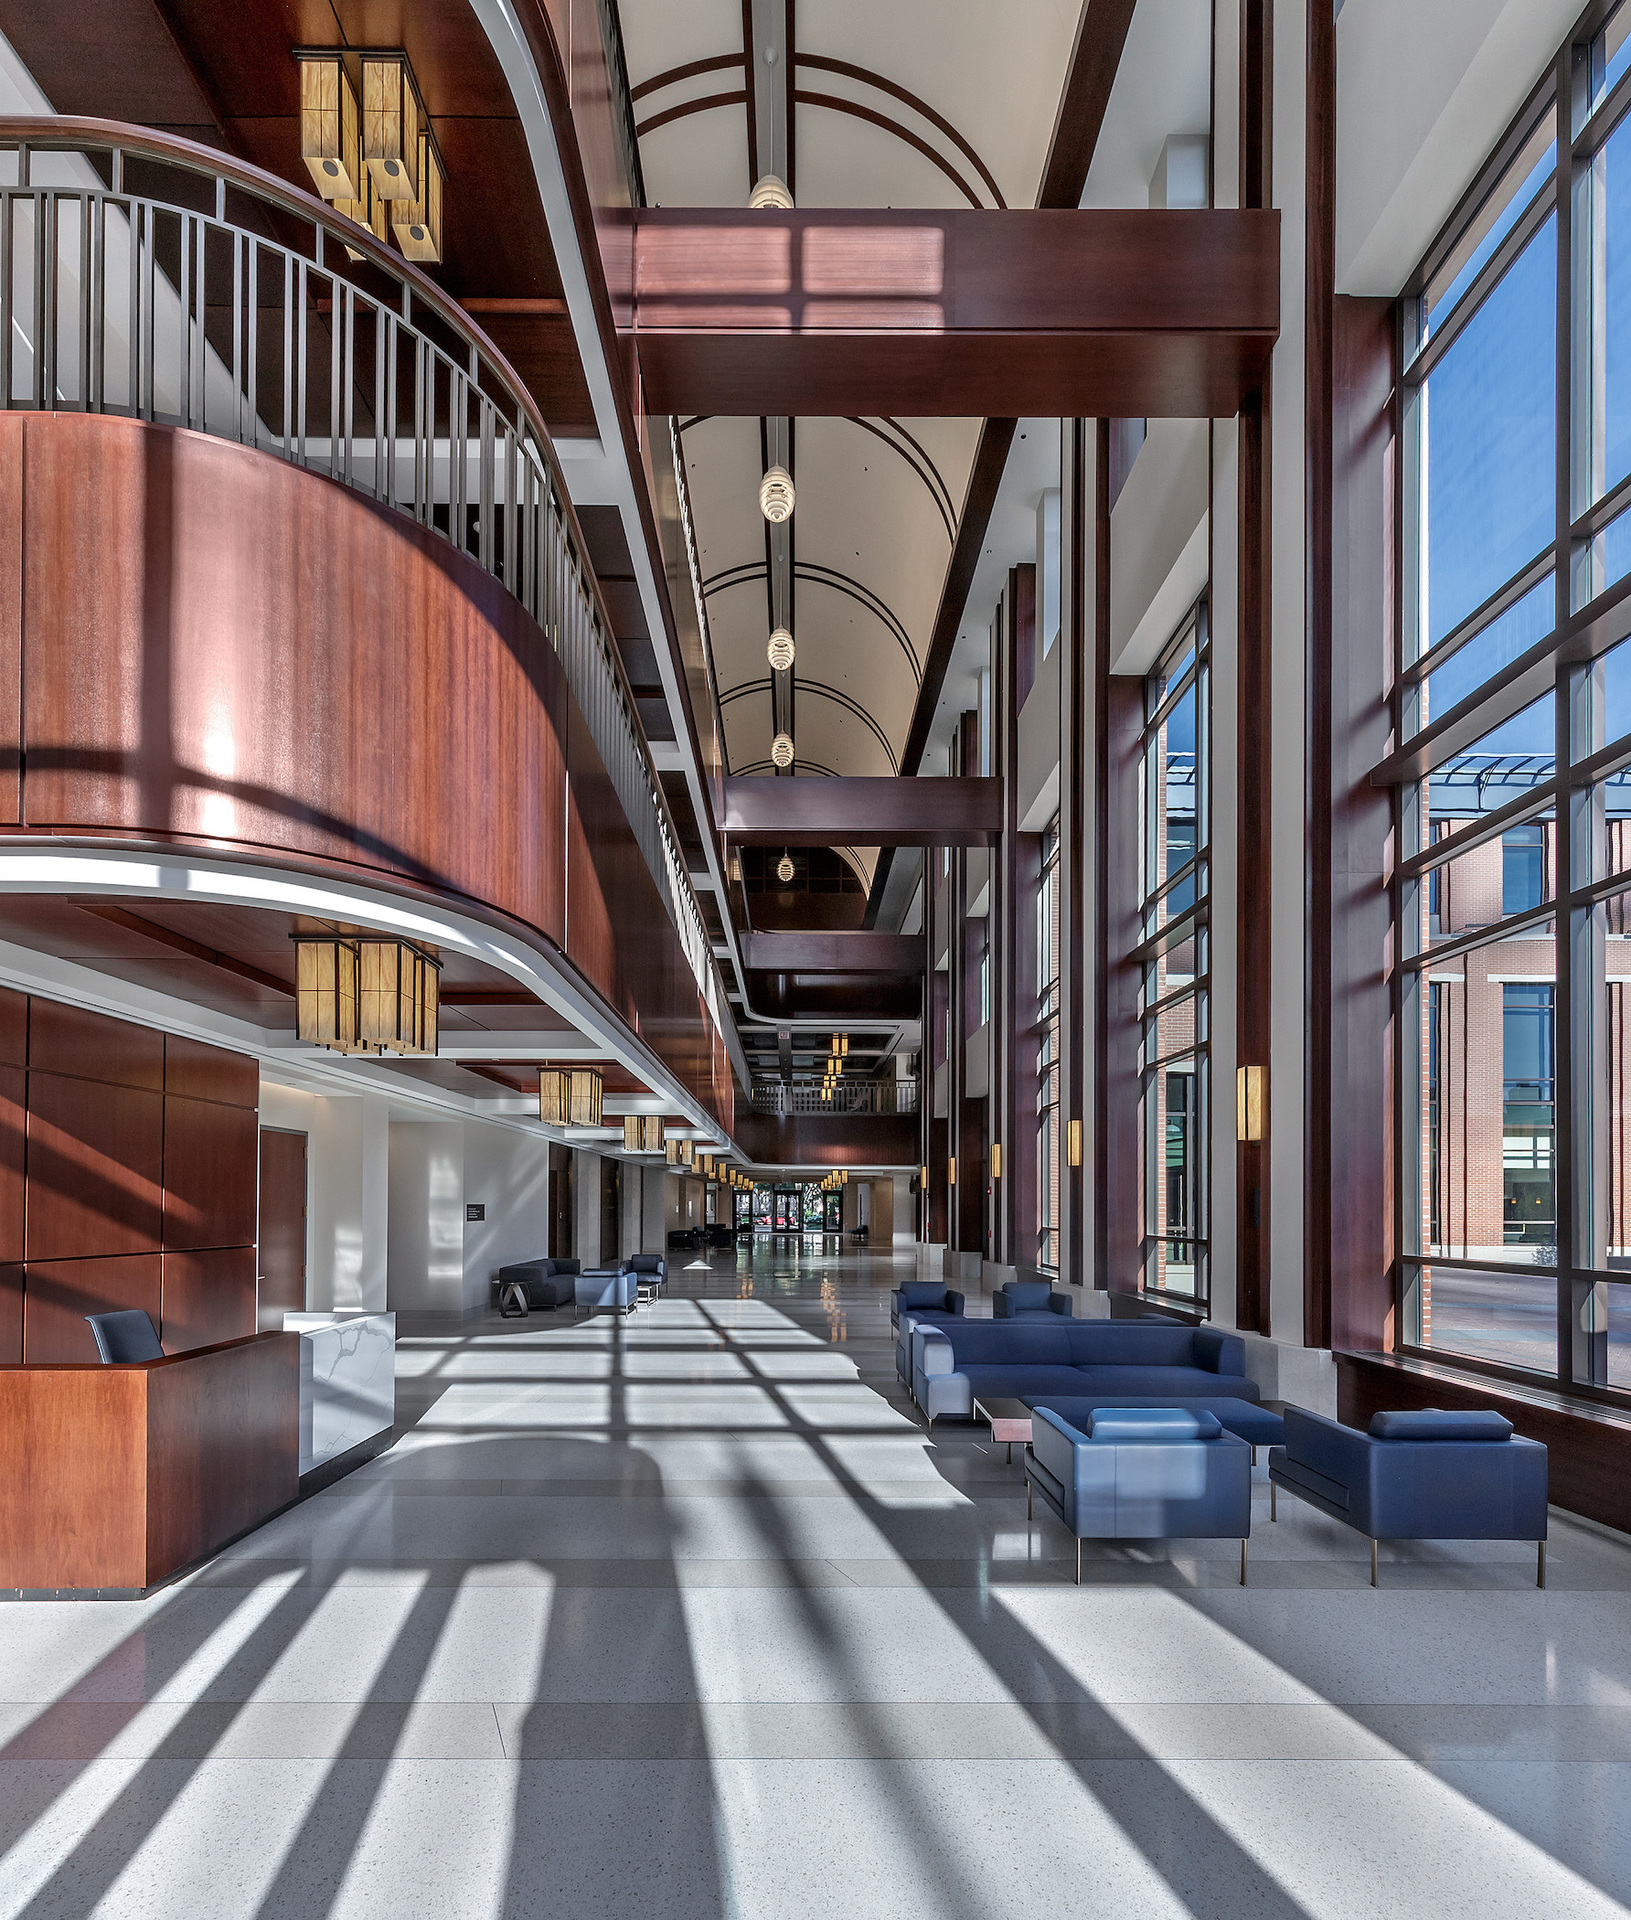 Move freely in this spacious reception and lobby at The DePaul University Holtschneider Performance Center in Chicago, Illinois, designed by Antunovich Associates.